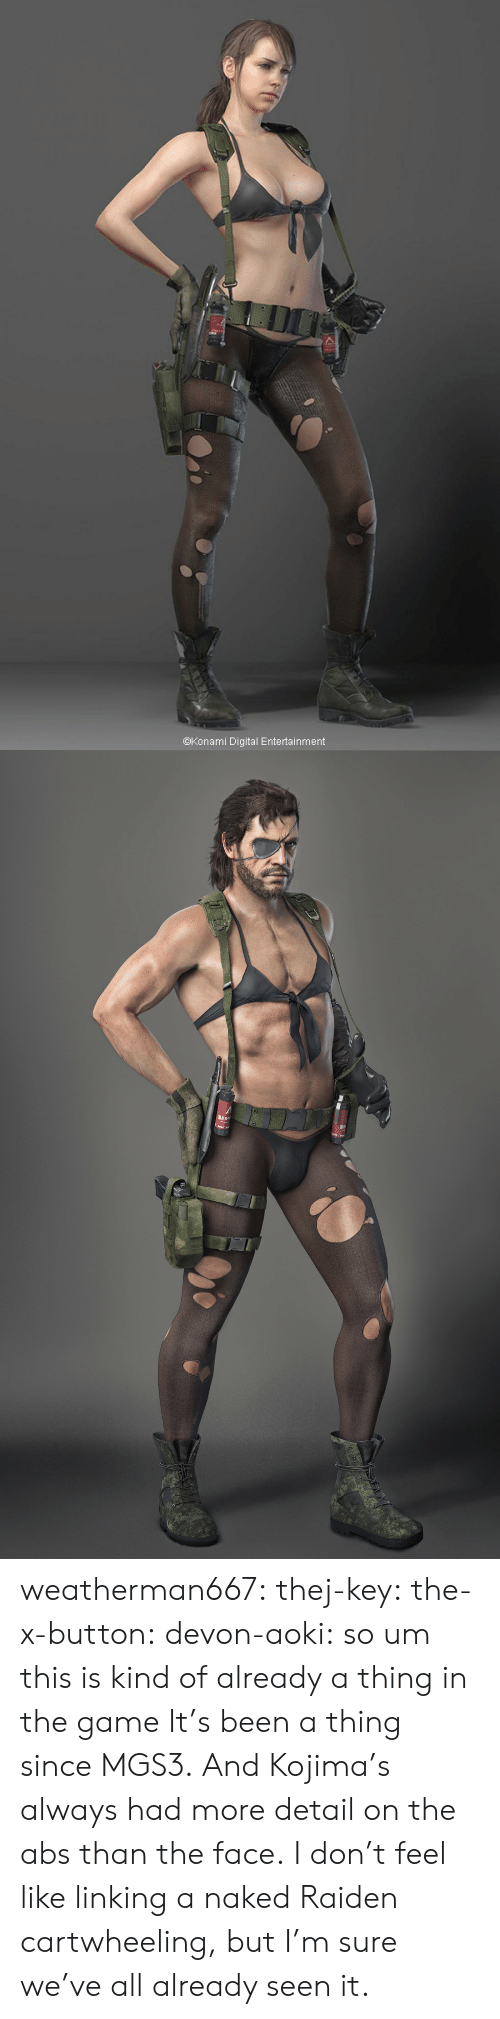 linking: @Konami Digital Entertainment weatherman667: thej-key:  the-x-button:  devon-aoki:  so um this is kind of already a thing in the game   It's been a thing since MGS3. And Kojima's always had more detail on the abs than the face.  I don't feel like linking a naked Raiden cartwheeling, but I'm sure we've all already seen it.